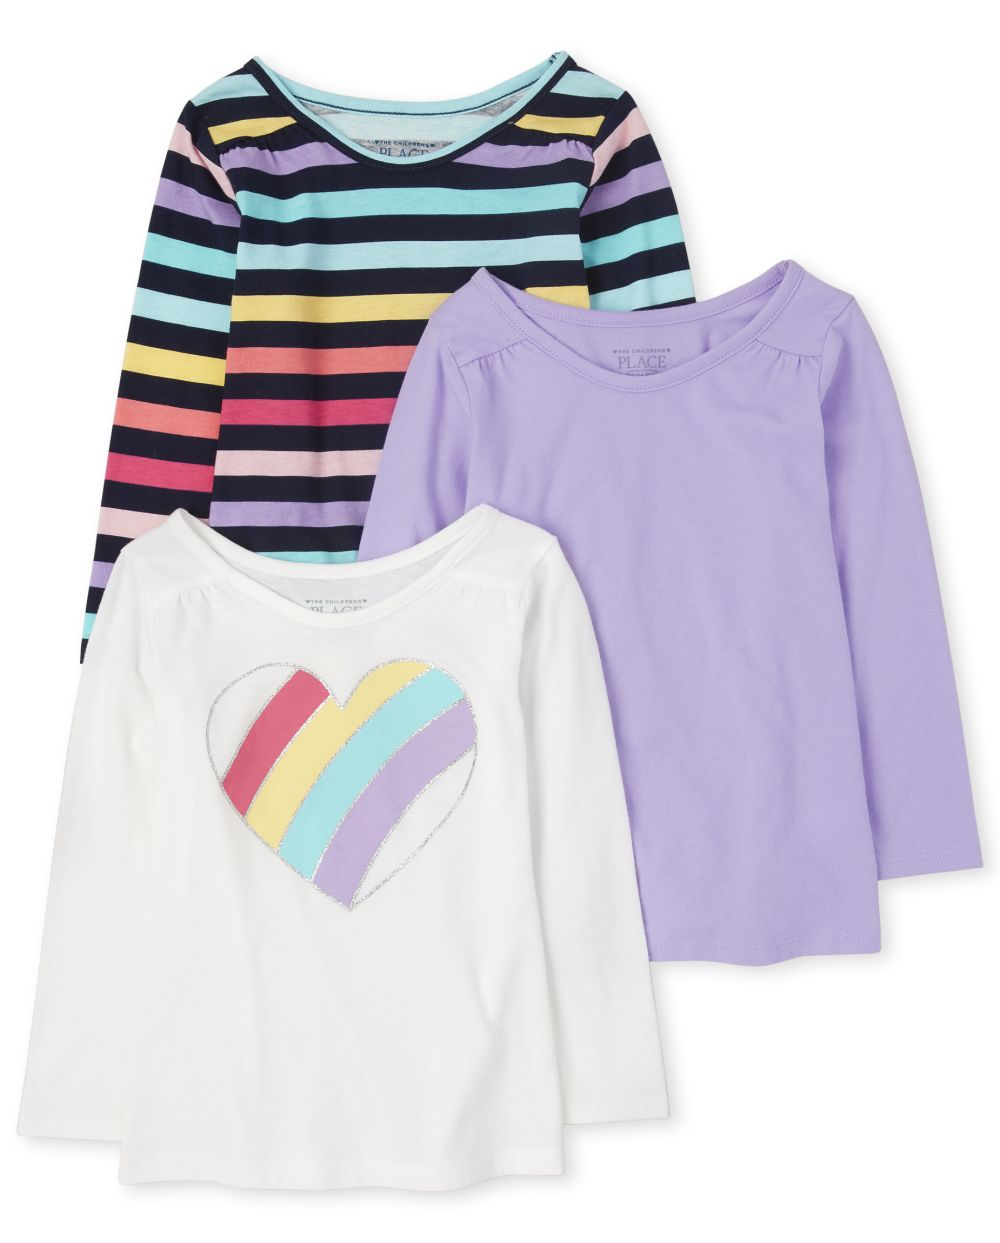 Toddler Girls Rainbow Top 3-Pack